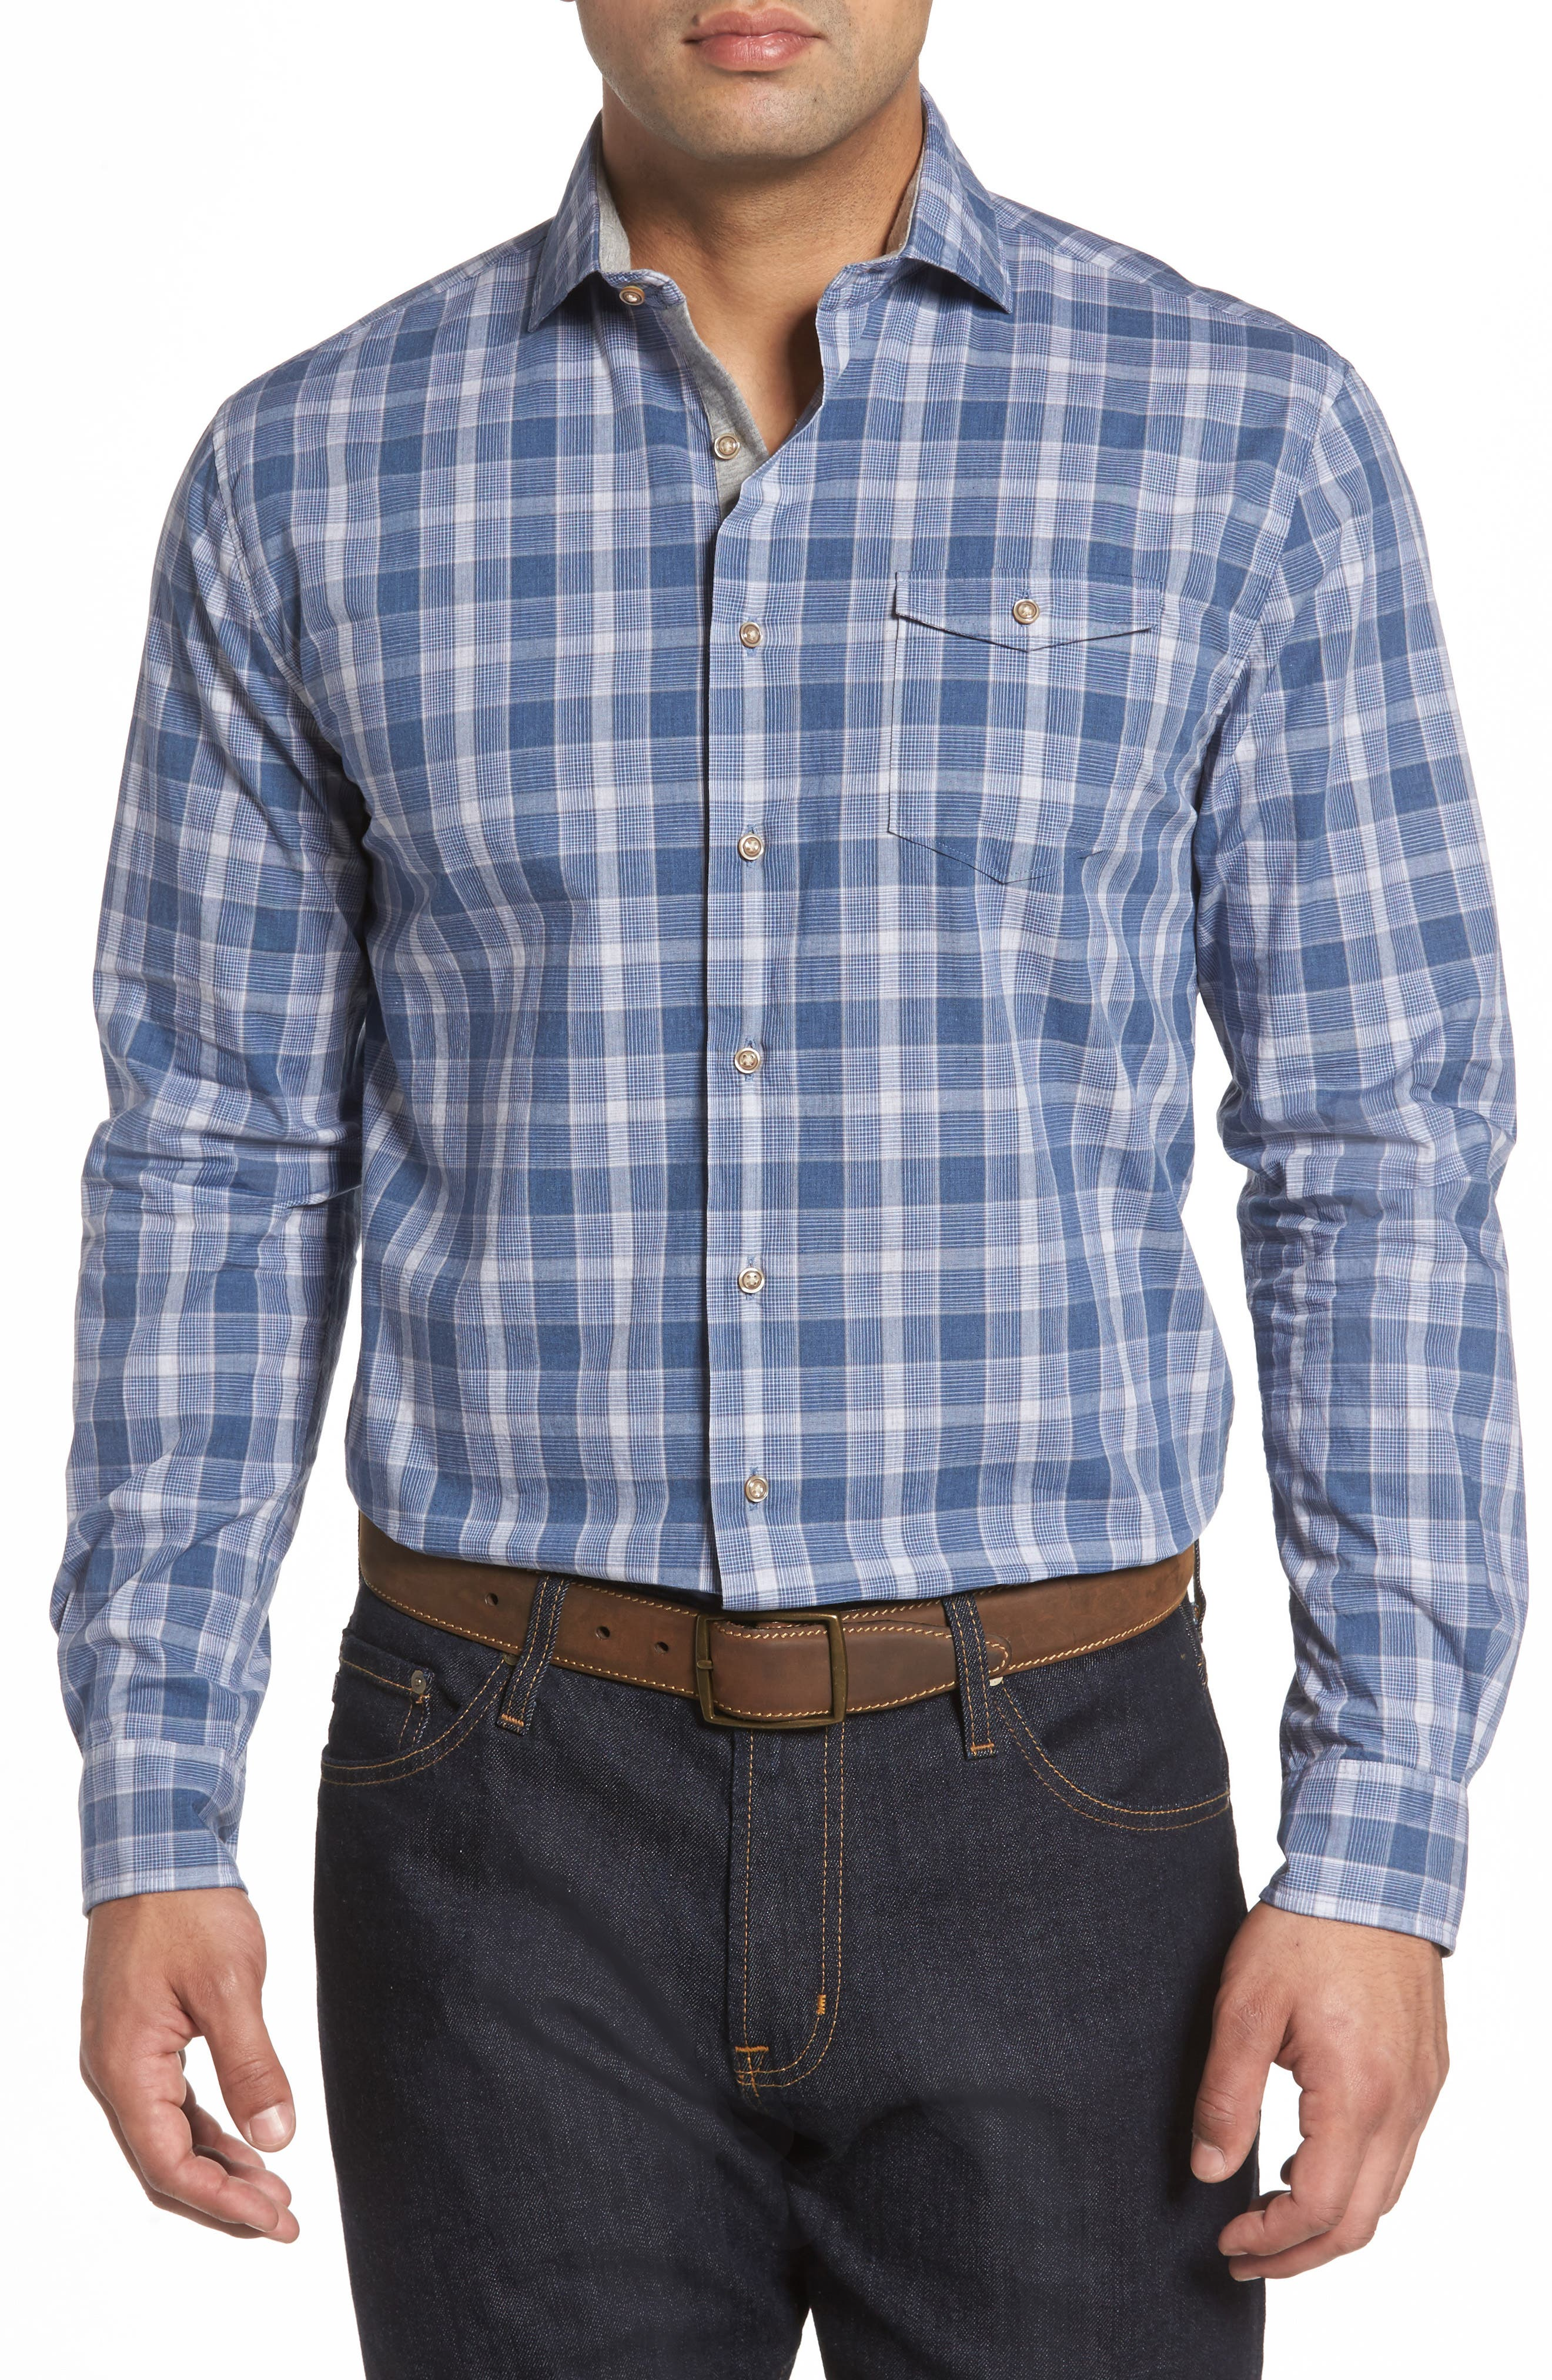 Highlands Classic Fit Plaid Sport Shirt,                         Main,                         color, Abyss